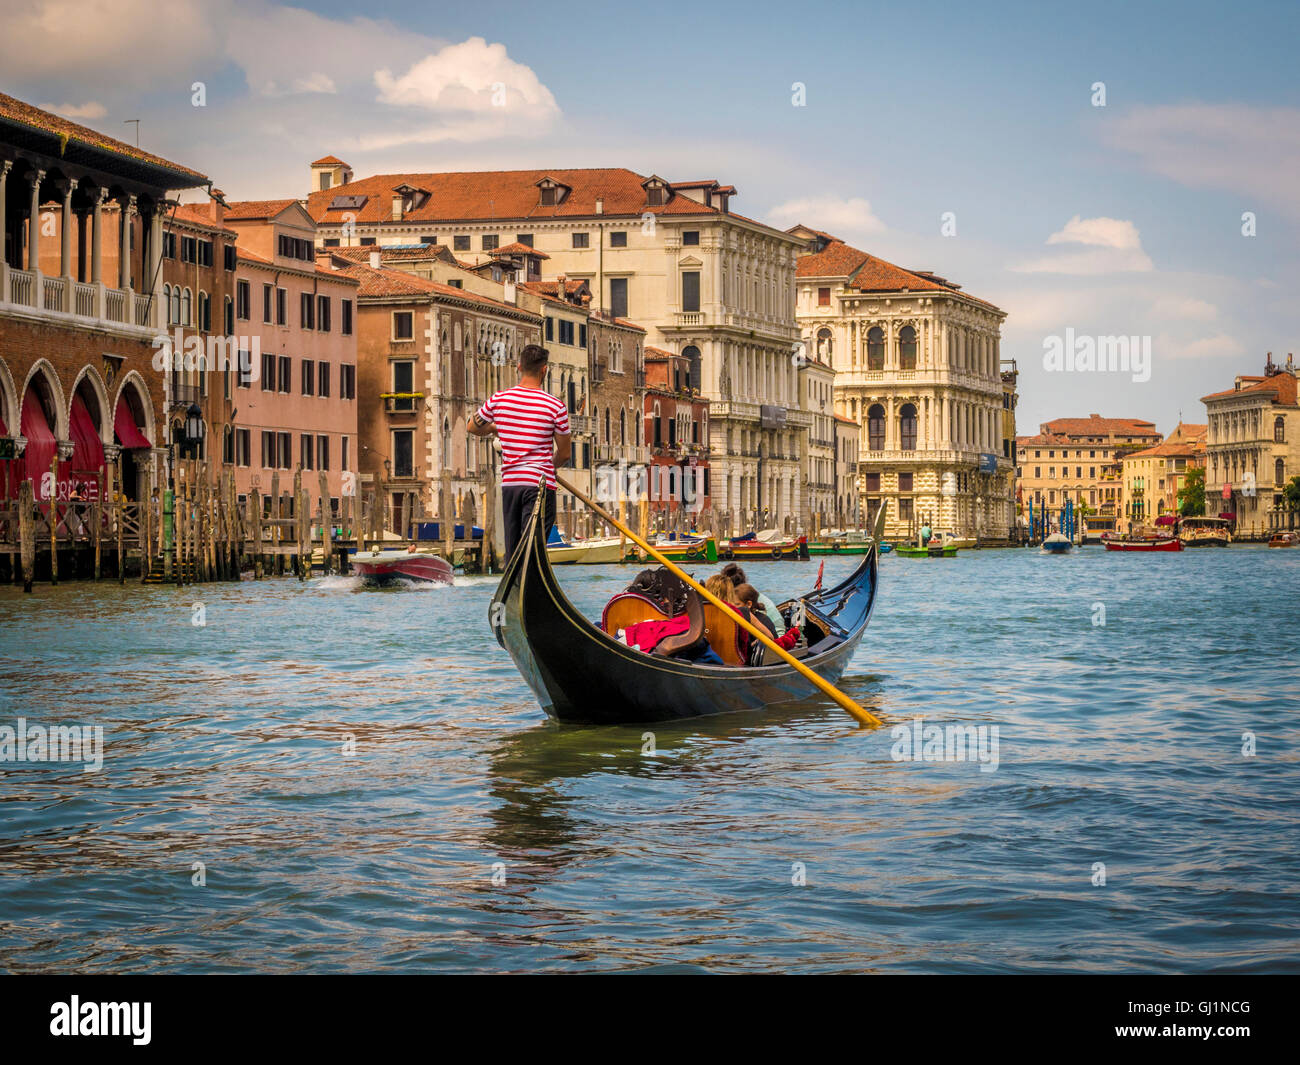 Gondola on the Grand Canal, with gondolier wearing a traditional striped top. Venice. Italy. - Stock Image